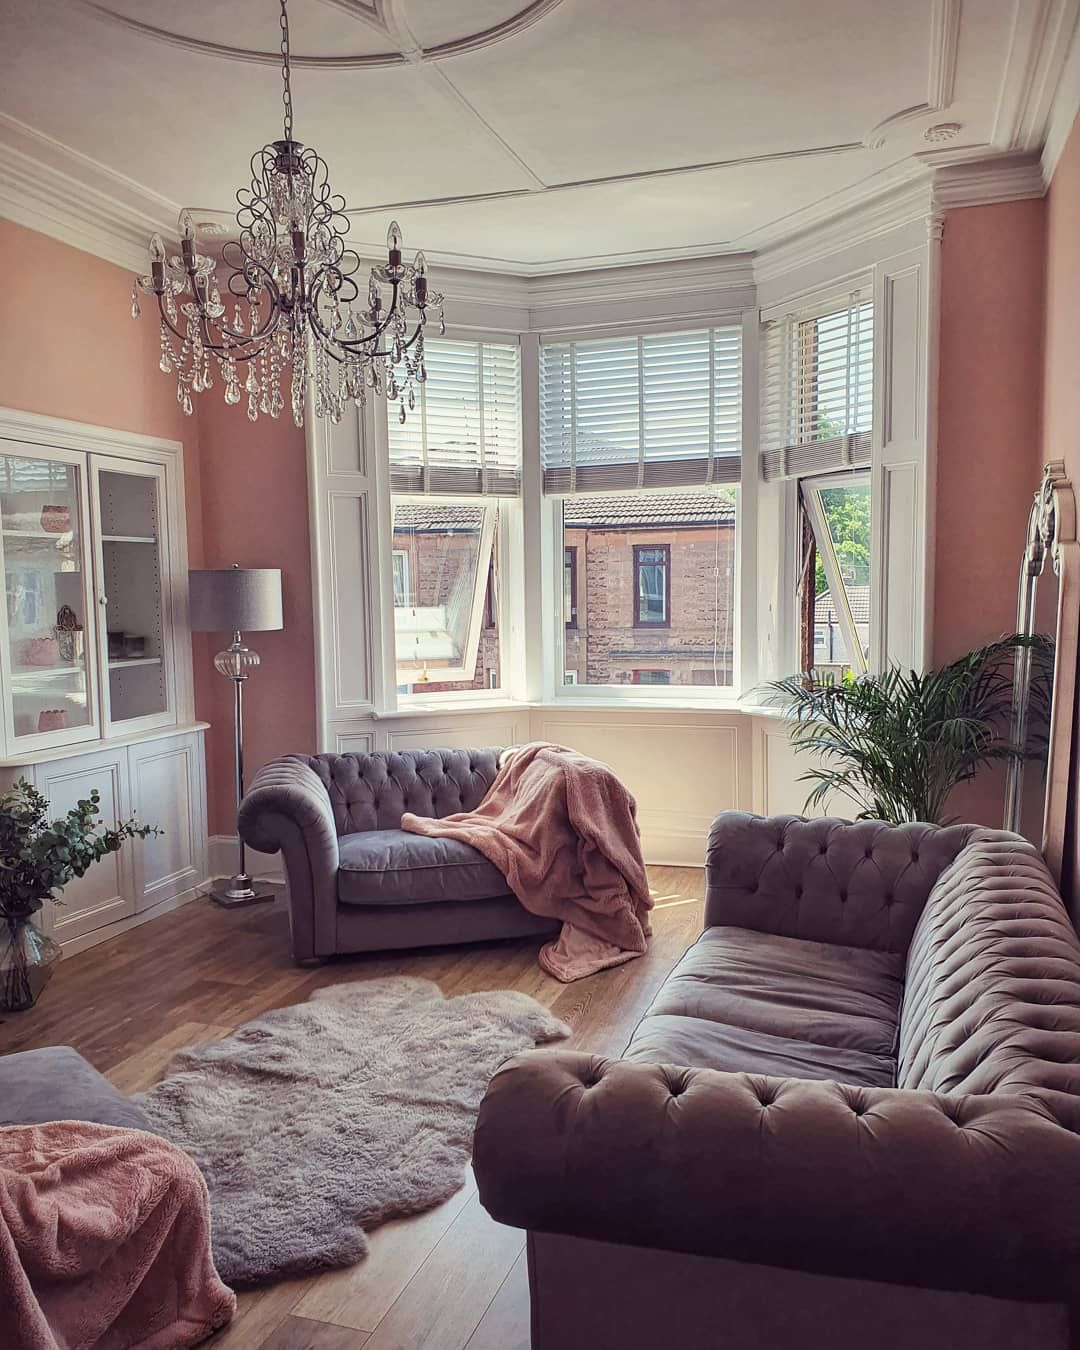 Striking Lounge With Painted Walls In 2020 Brown Living Room Decor Small Living Room Decor Oak Floor Living Room The living rooms glasgow